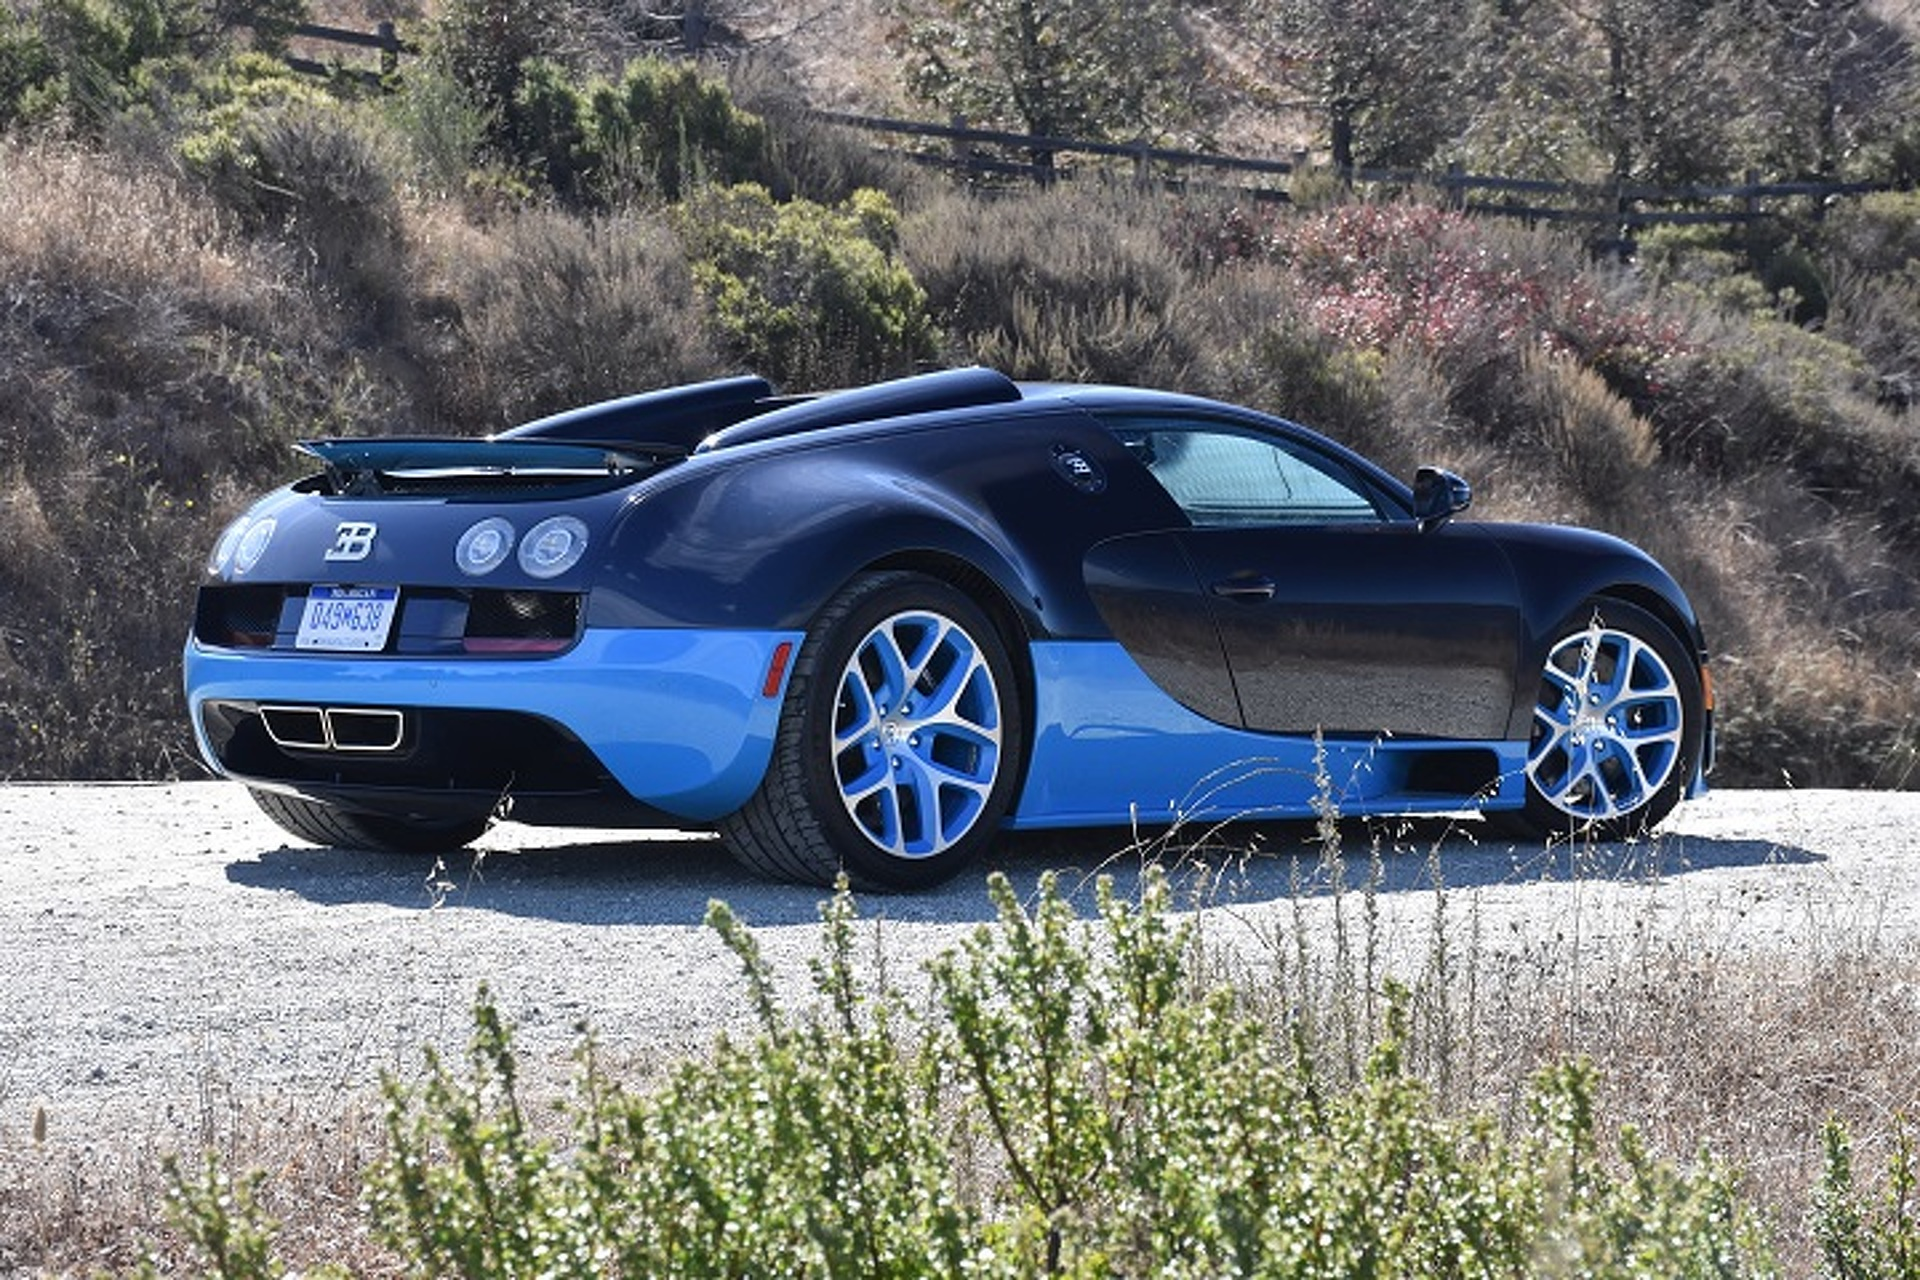 the-bugatti-veyron-is-the-closest-youll-get-to-a-fighter-jet-first-drive Cozy Bugatti Veyron Grand Sport Vitesse Engine Cars Trend